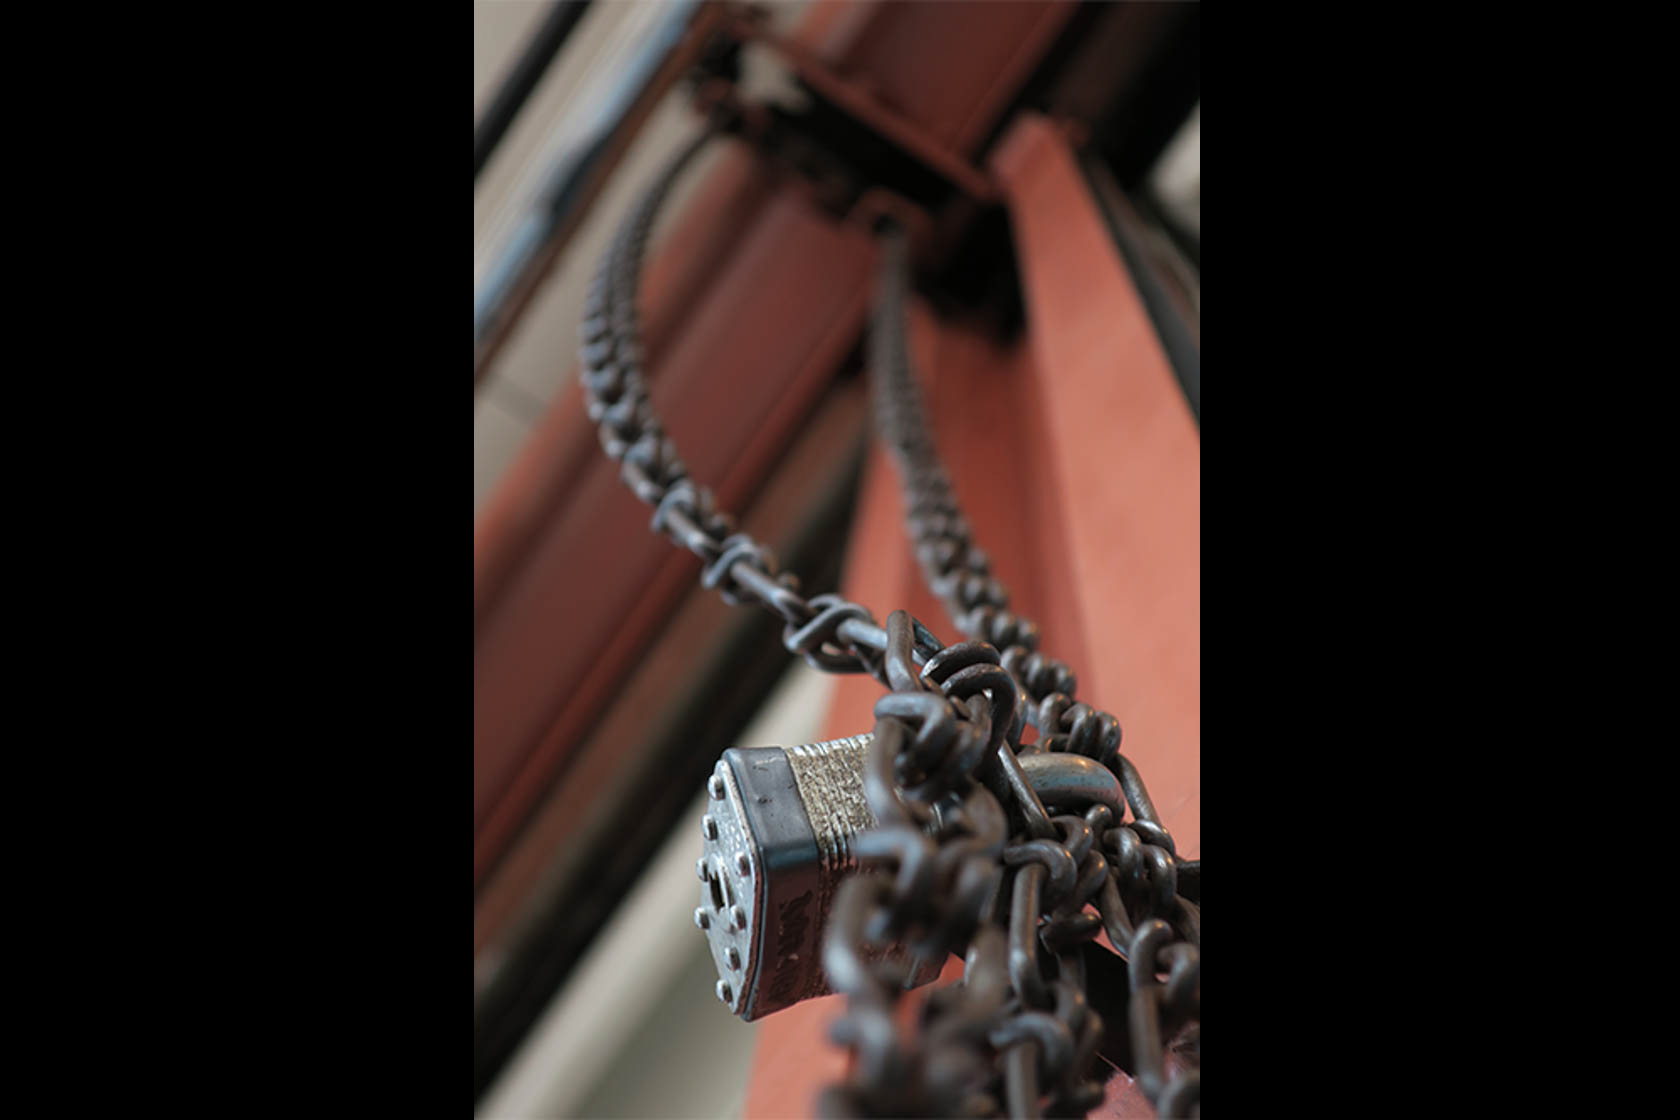 Padlock and chains shot on Canon PowerShot G9 X Digital Compact Camera